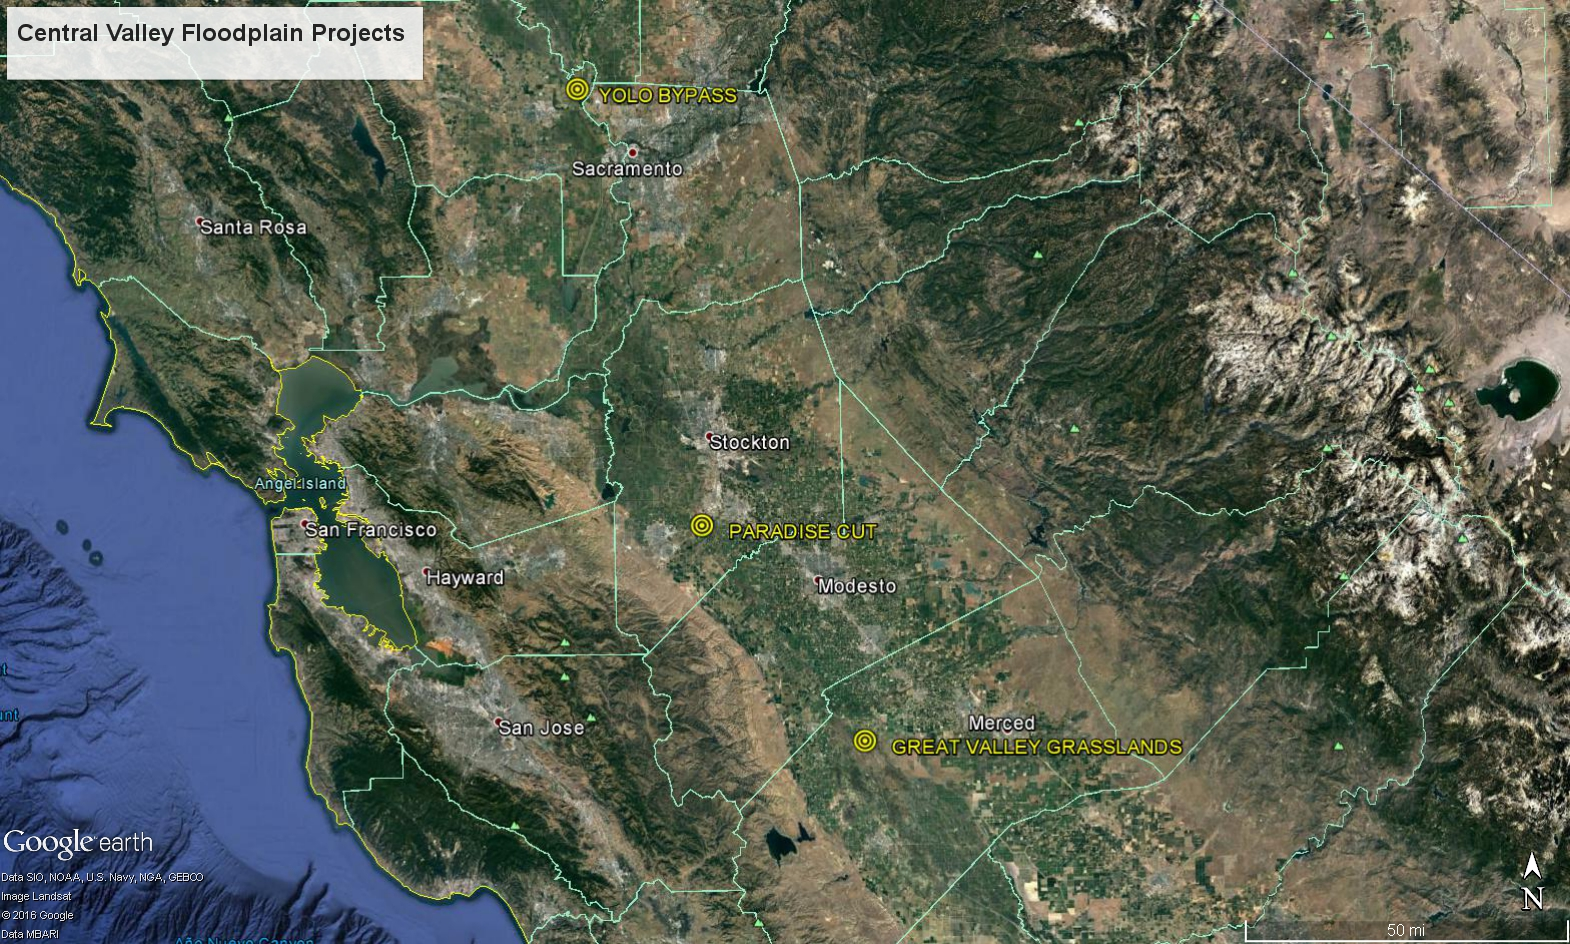 Map Of California S Central Valley Floodplain Project Locations